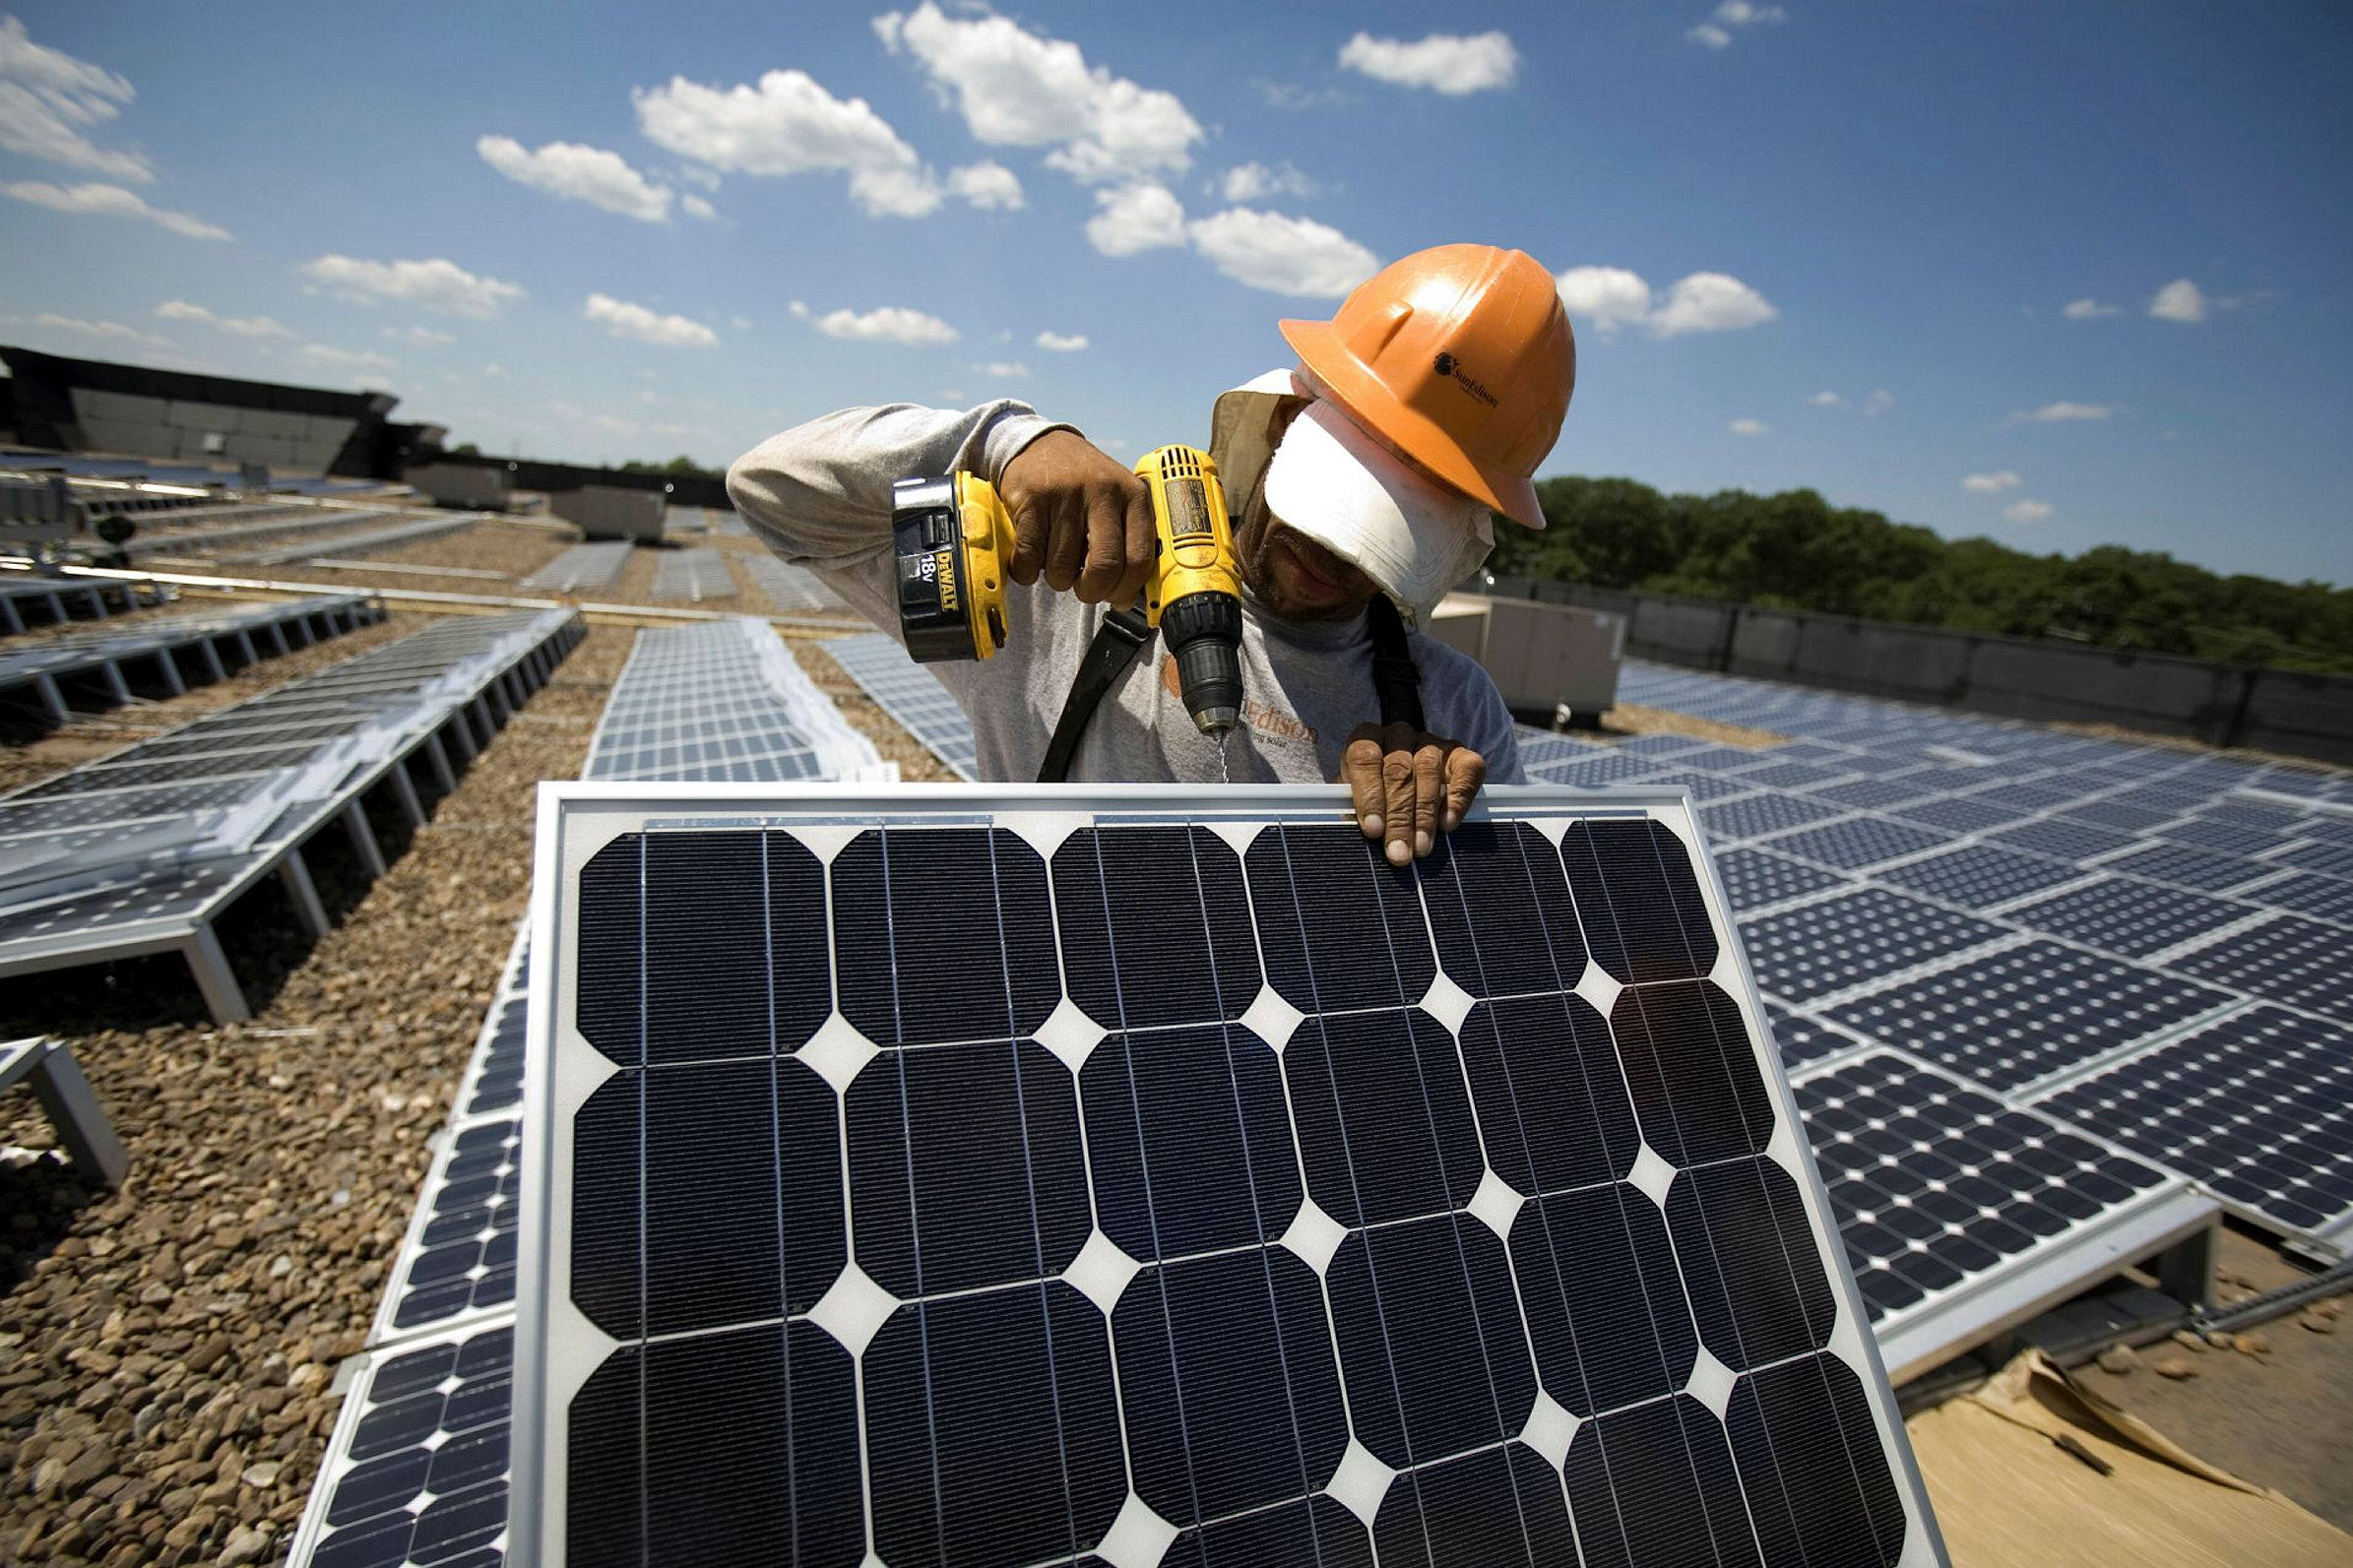 Brookfield bought two subsidiaries of SunEdison this year